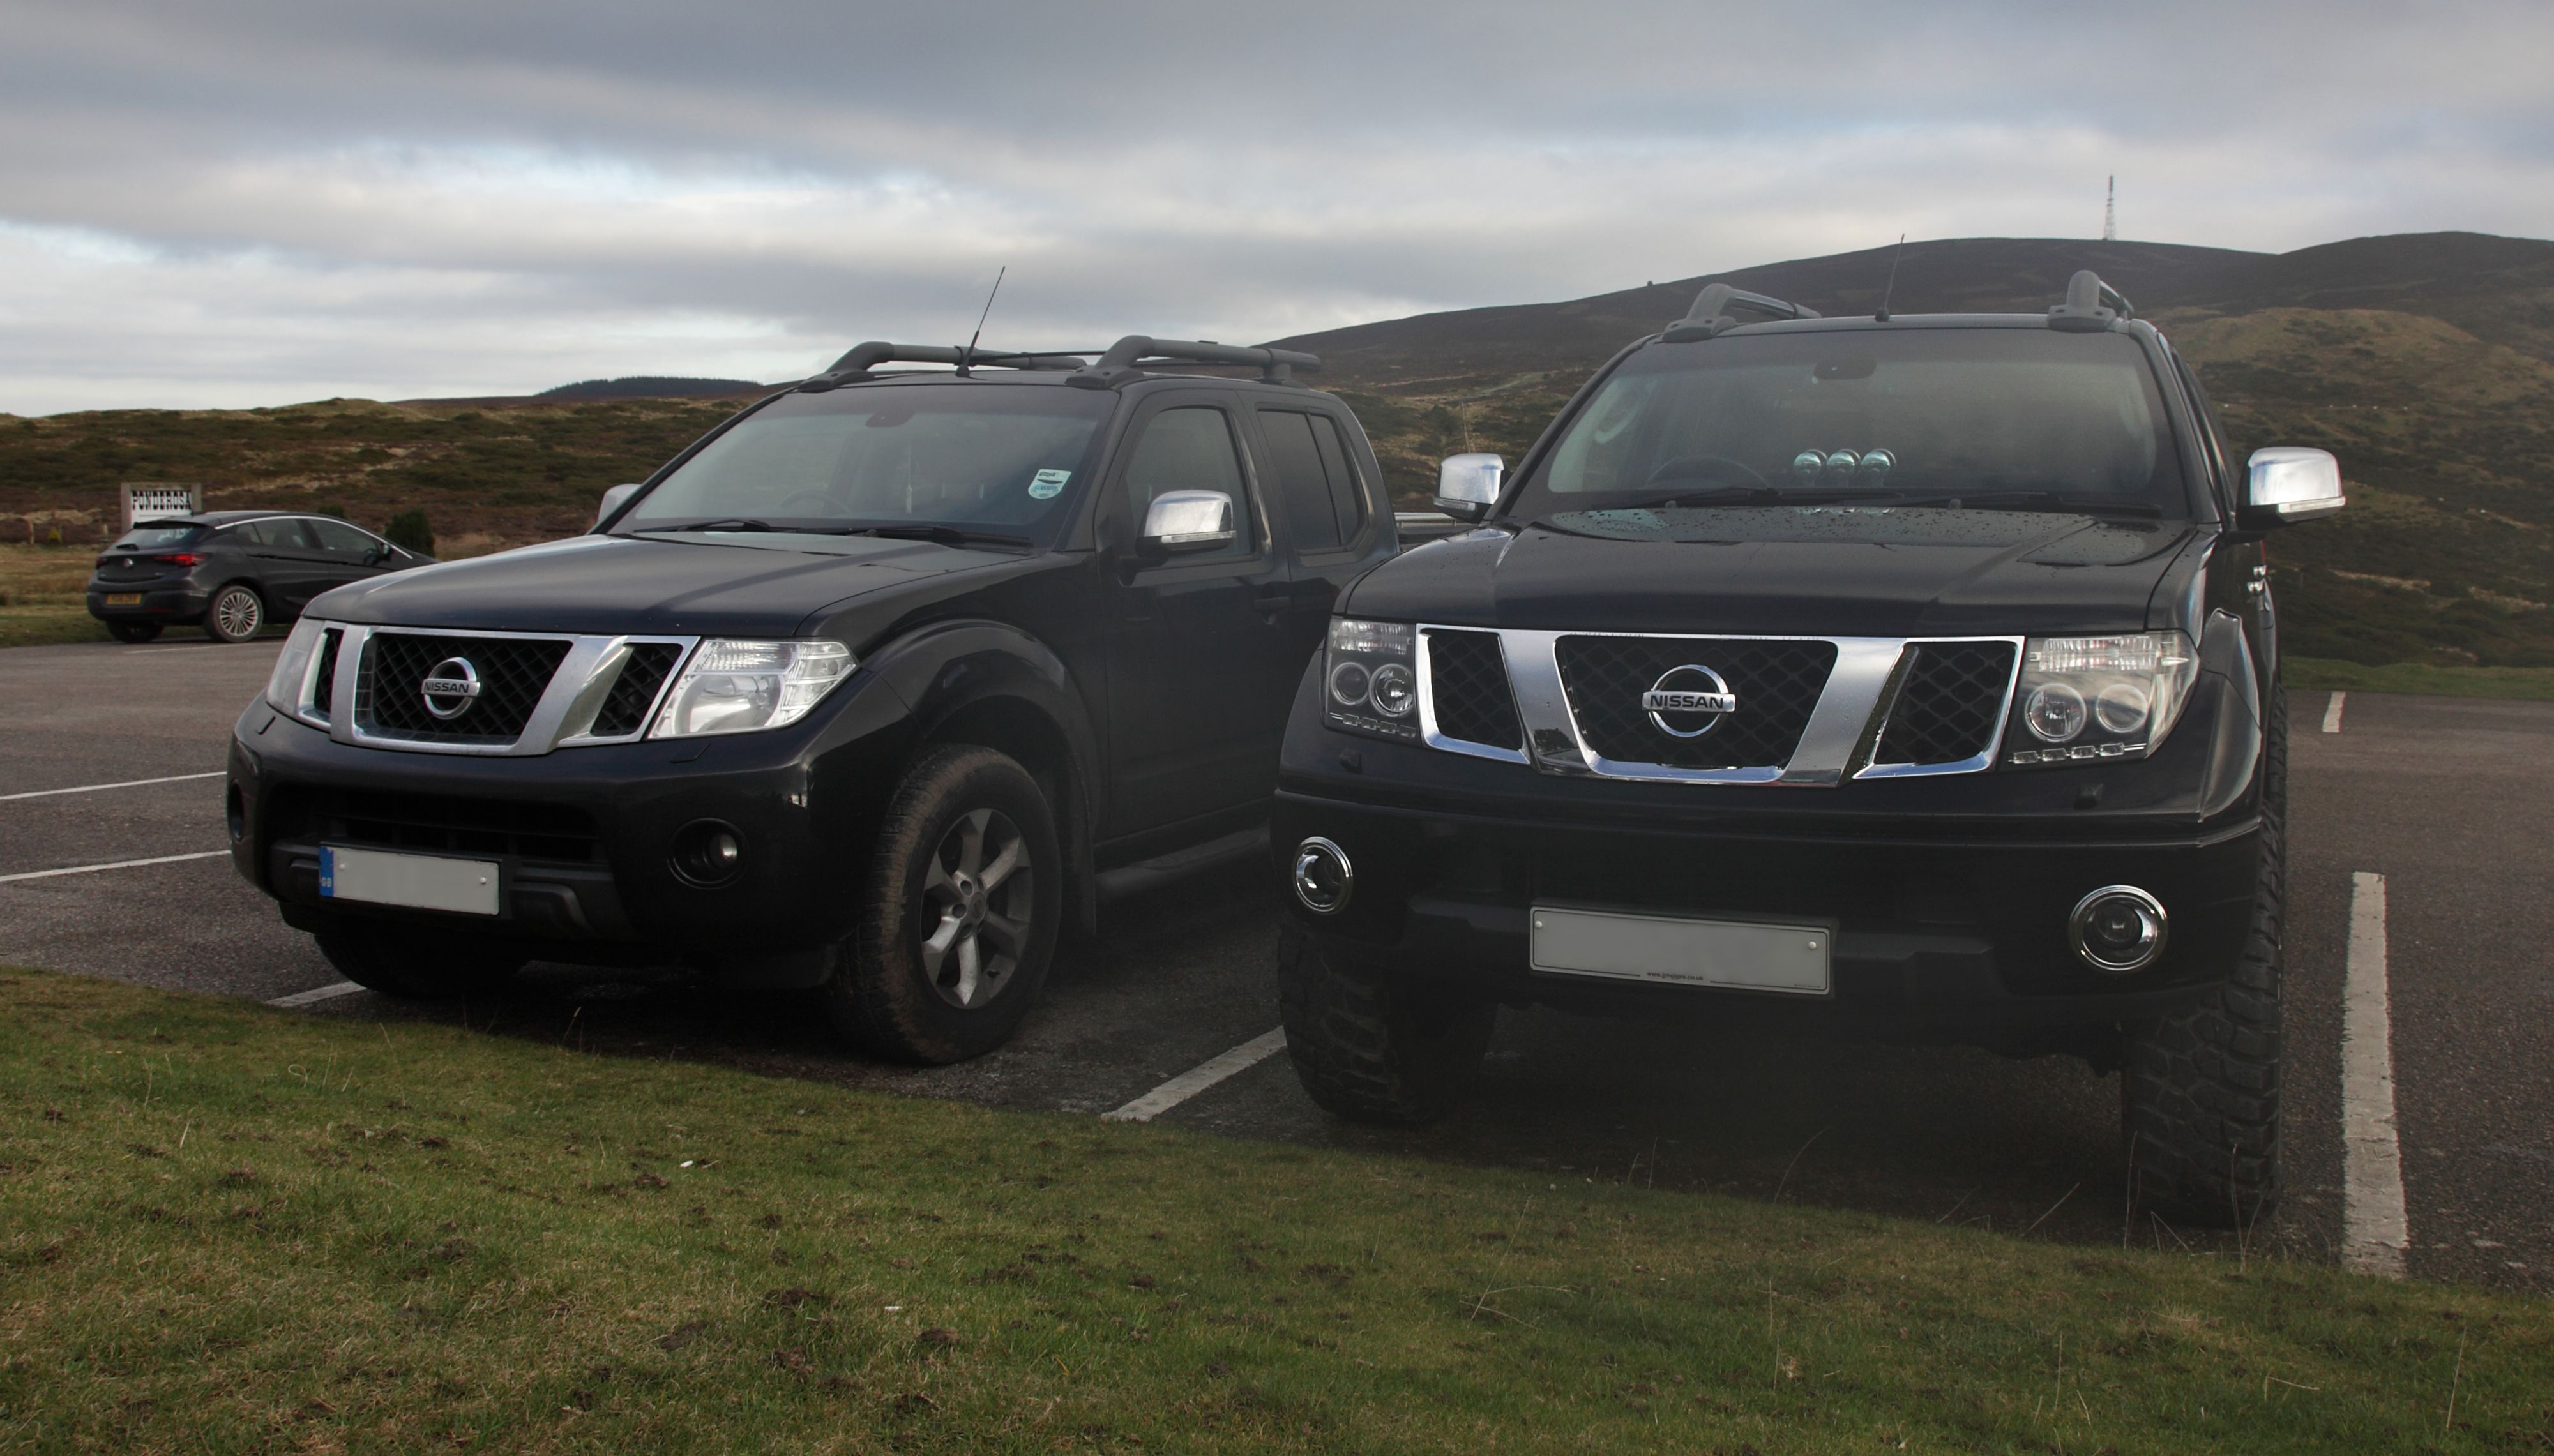 Lifted Nissan Navara D40, Nissan Frontier Comparison with